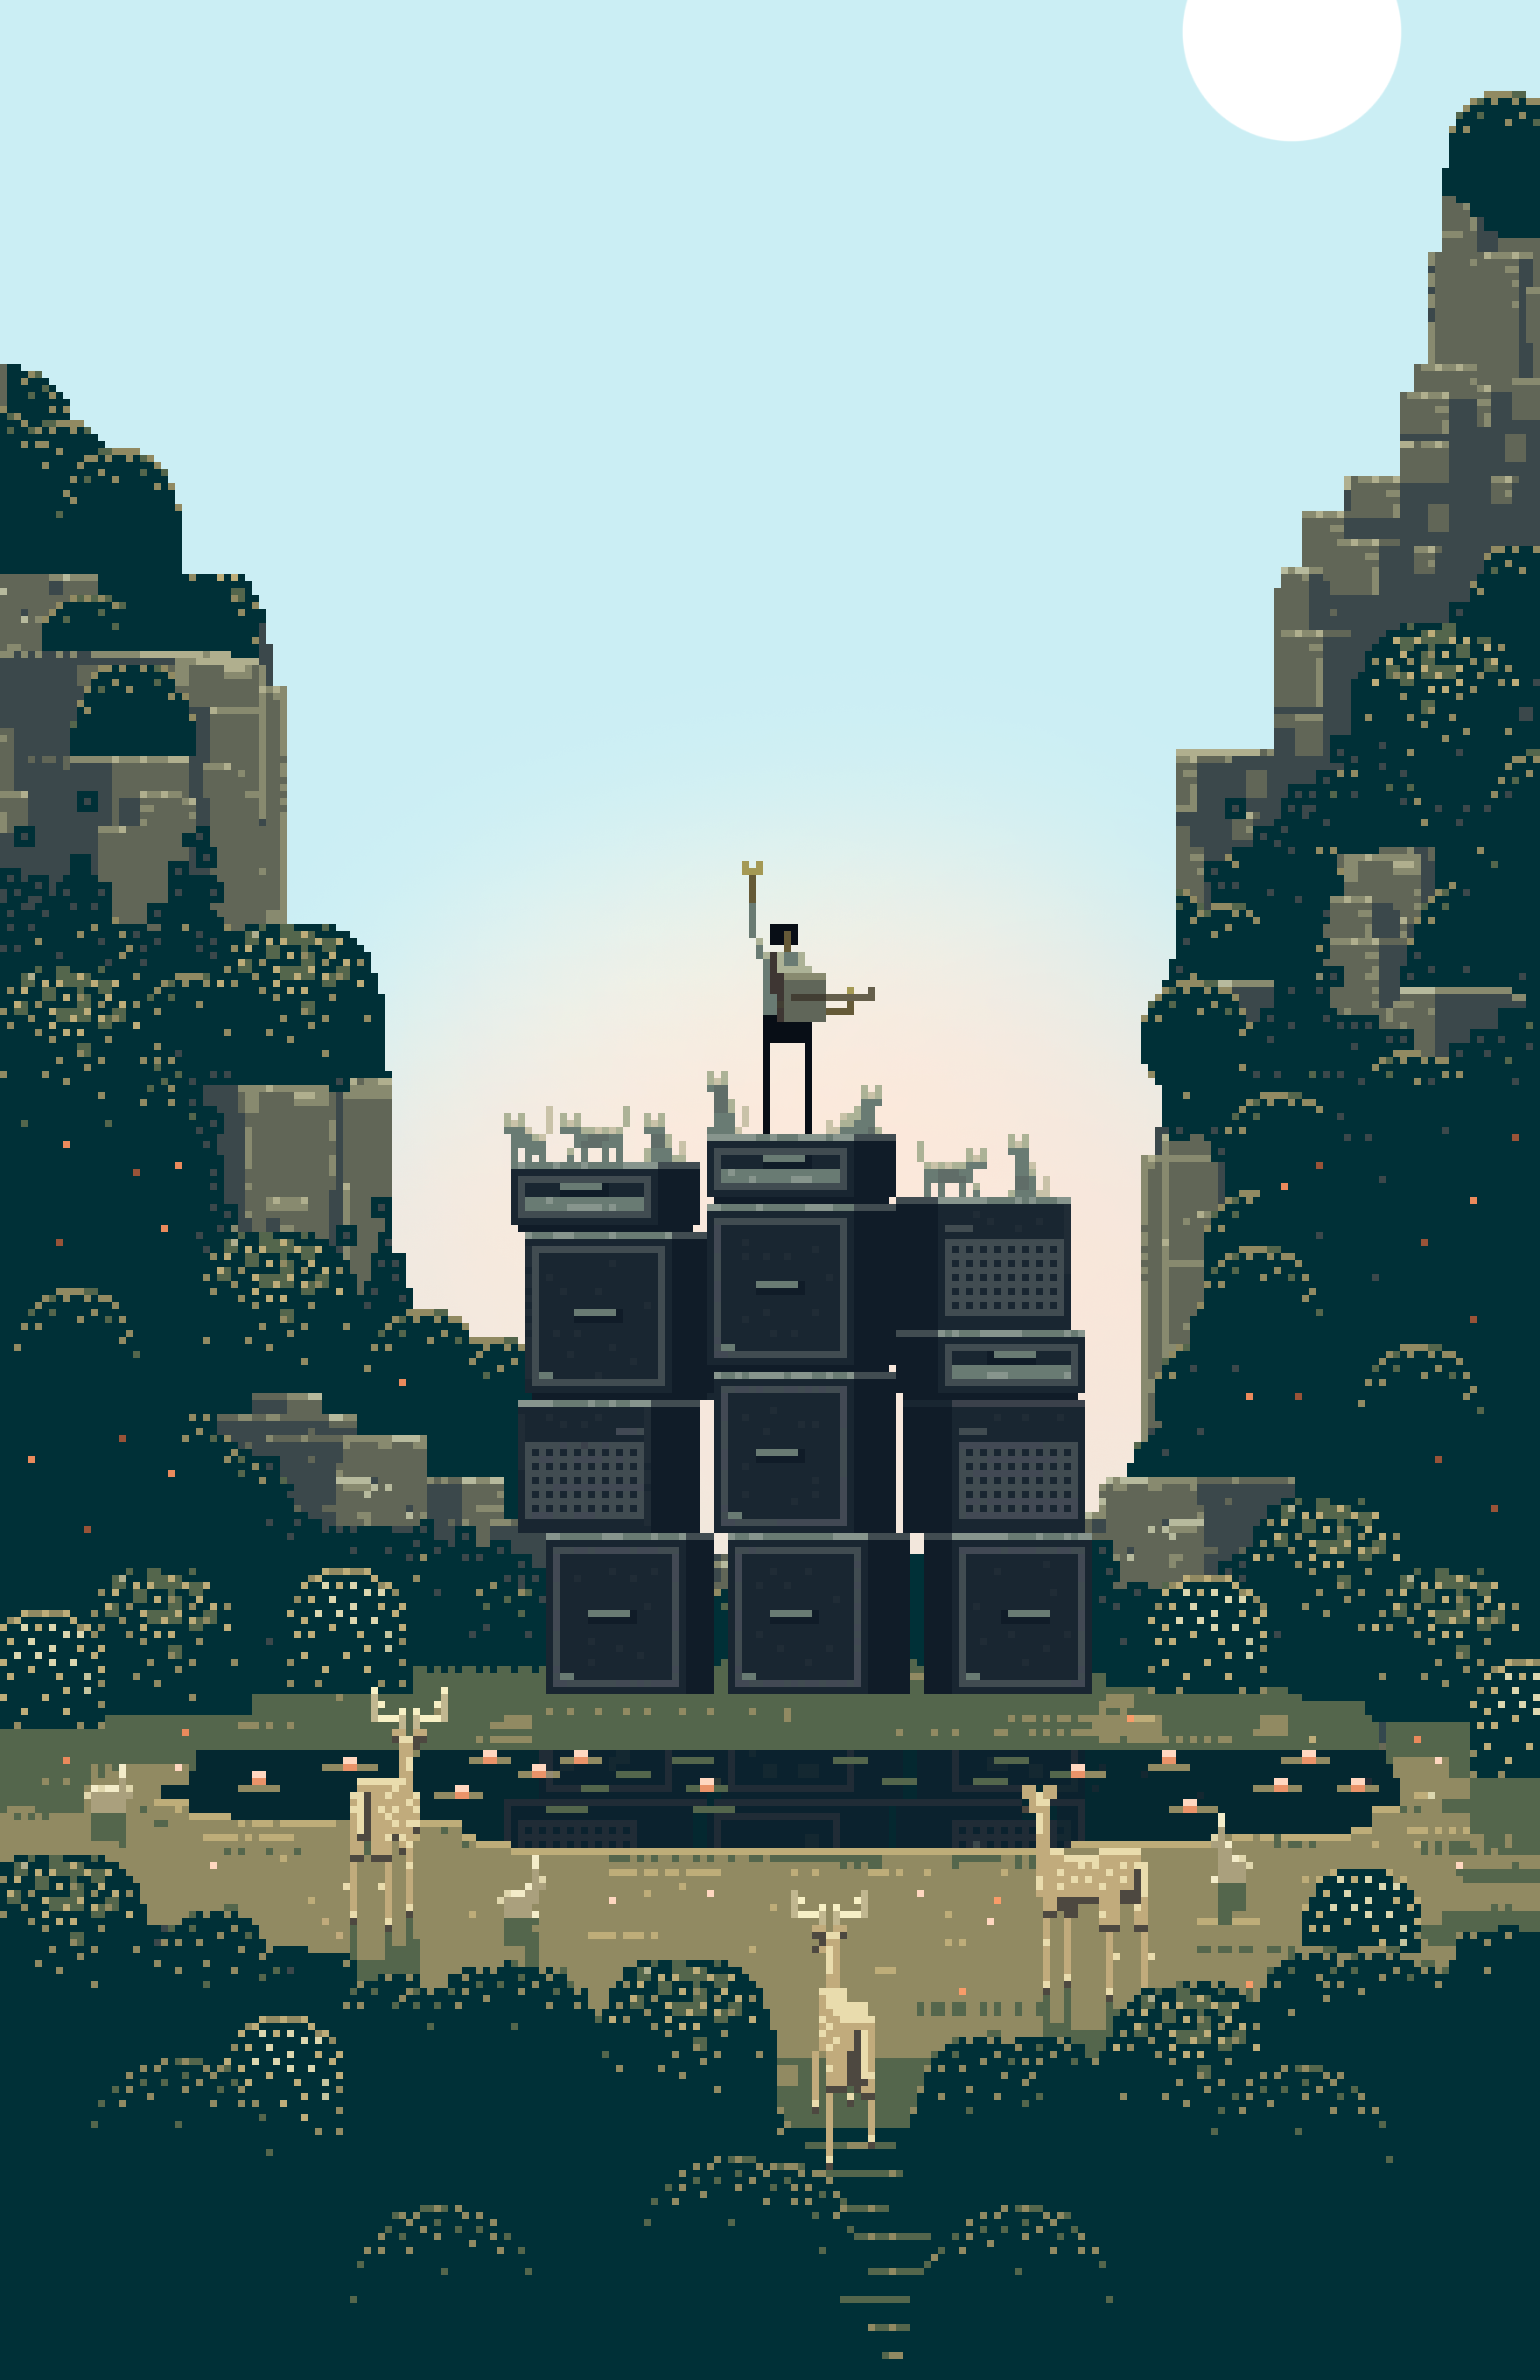 From the Indie Video game (2011)Superbrothers: Sword & Sworcery